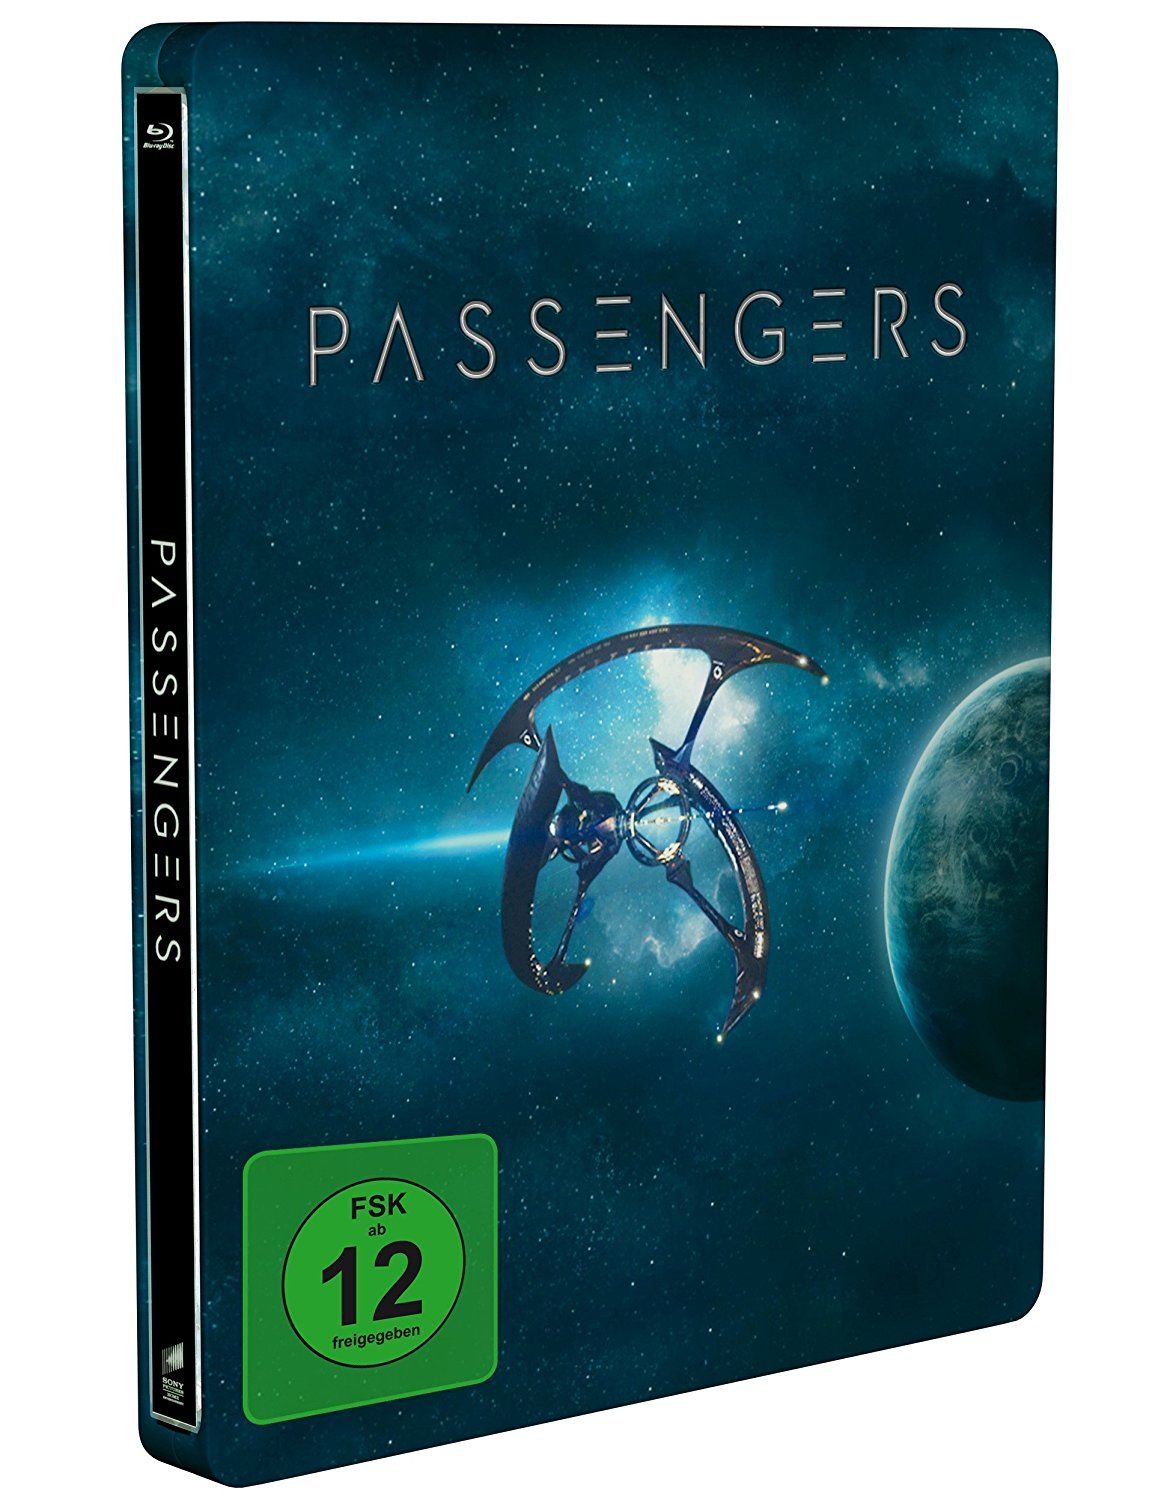 Passengers 2D/3D (2016) (Steelbook) Passengers movie